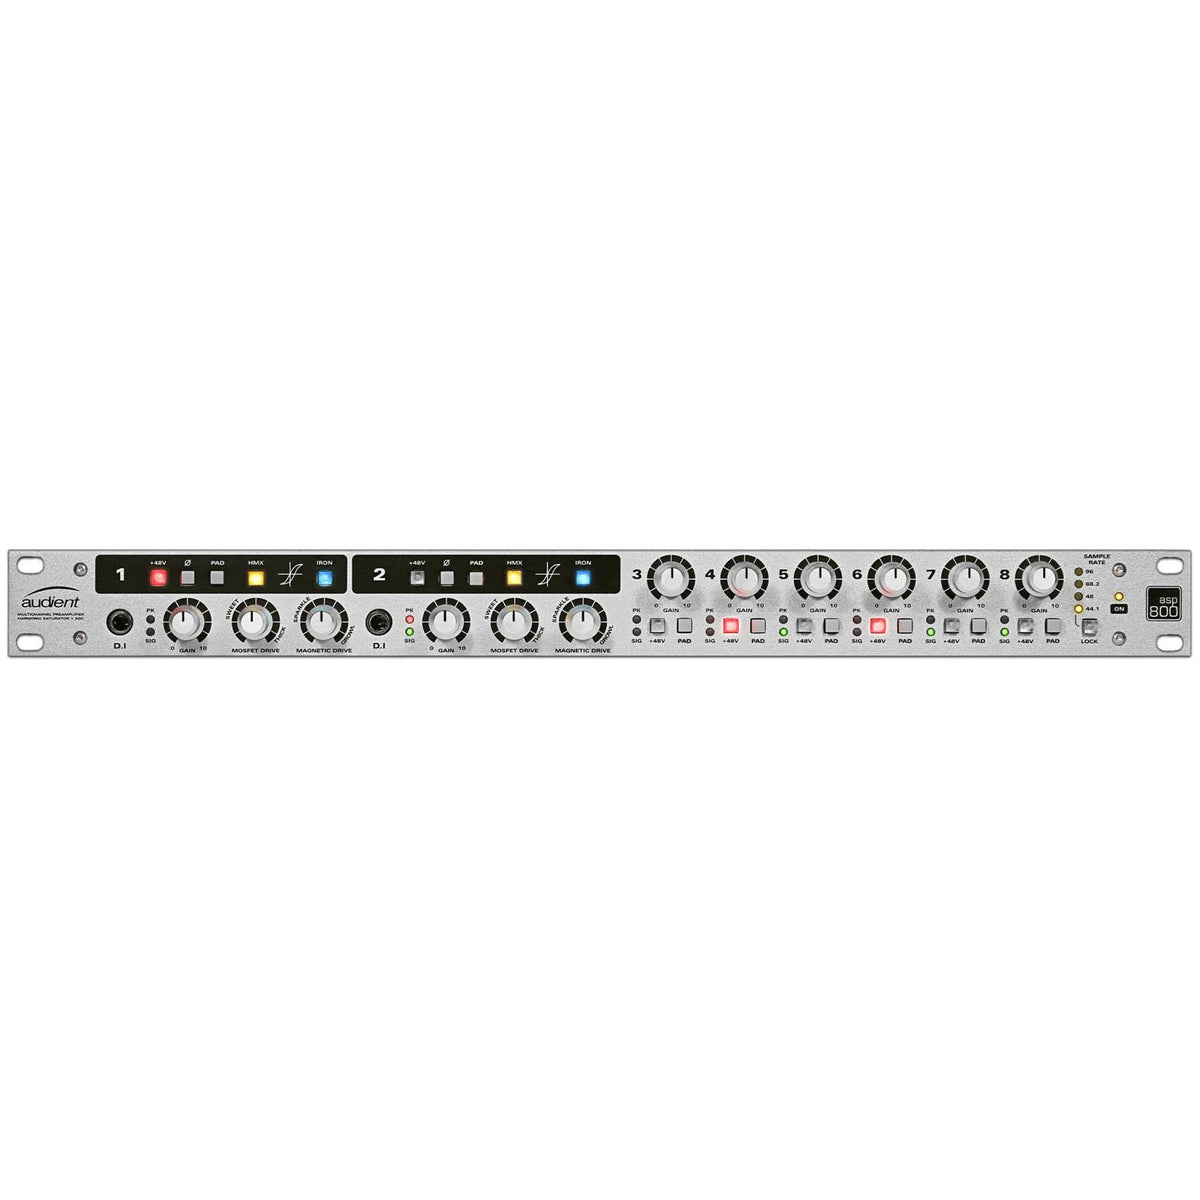 Audient ASP800 8-Channel Mic Pre & ADC